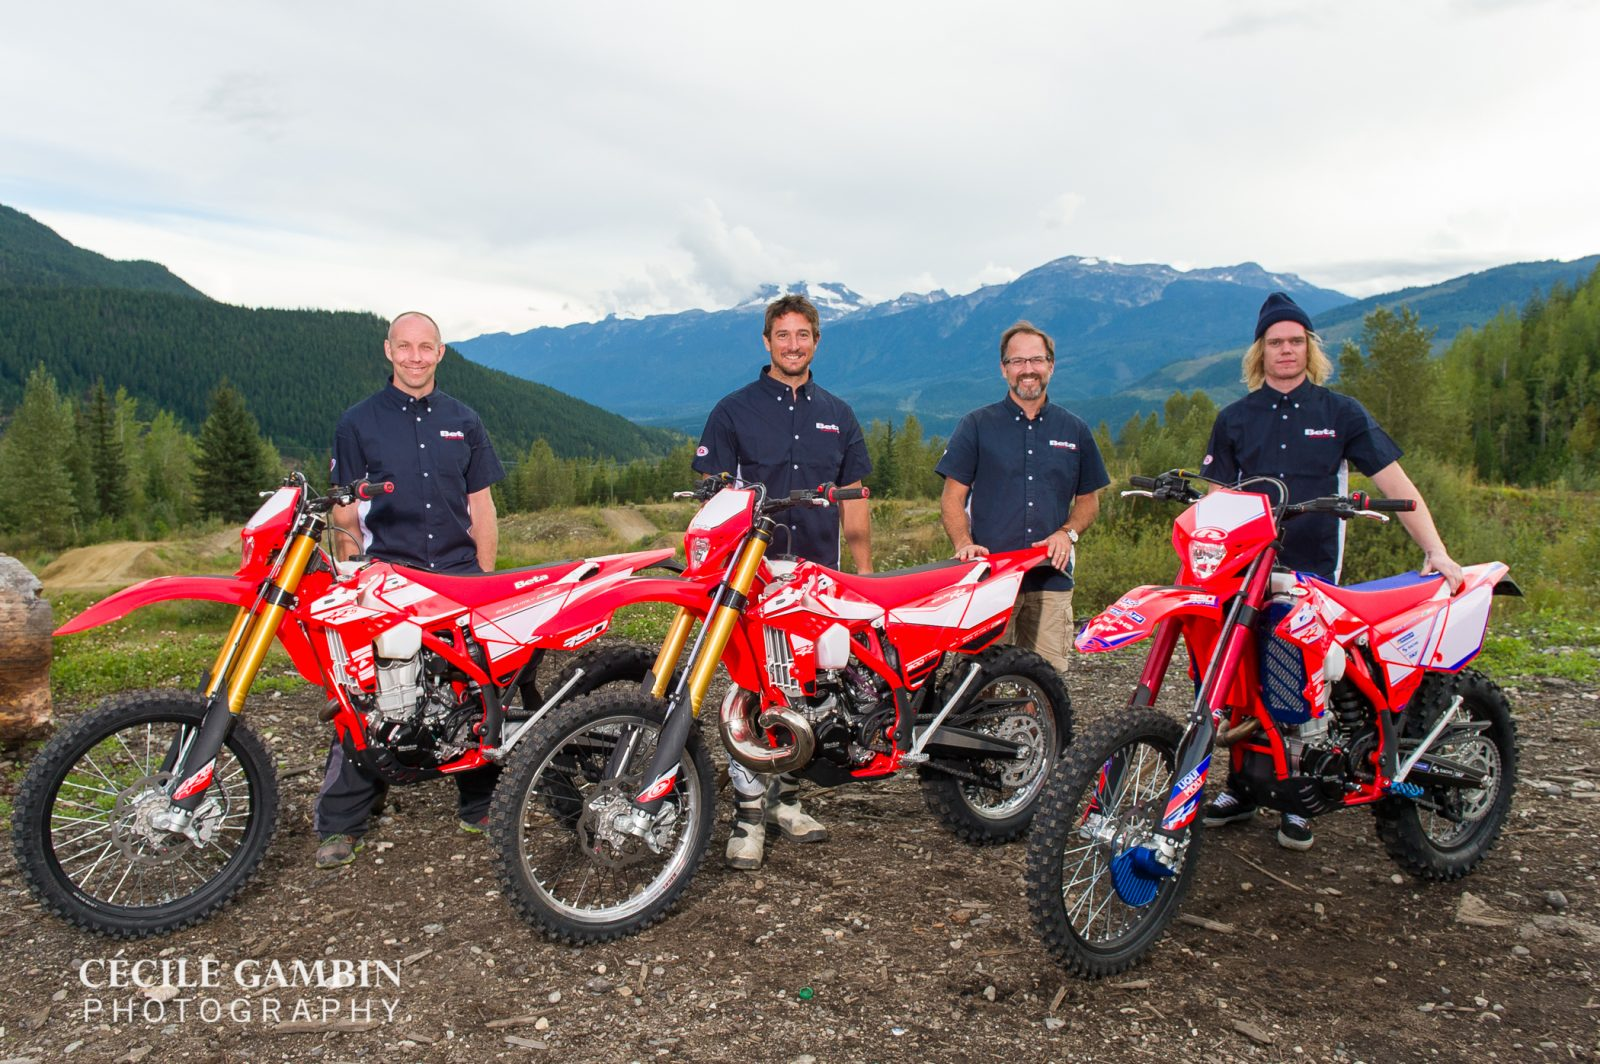 The Canadian Beta Factory Team - Foord, Marin, Howland, King